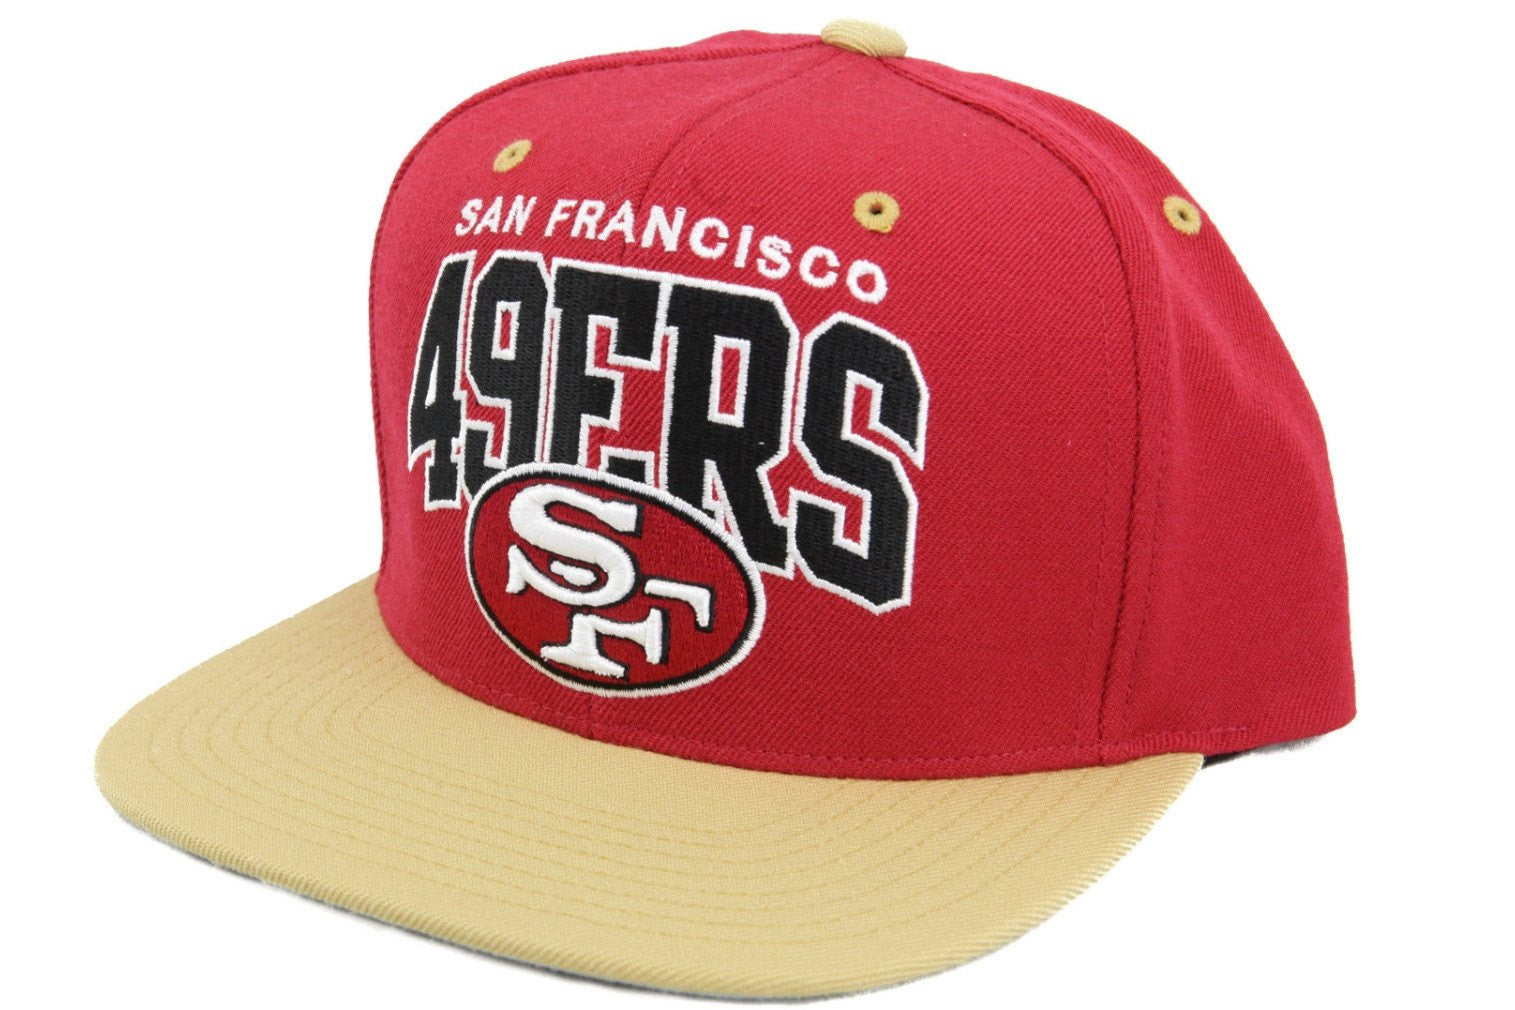 australia mitchell and ness san francisco 49ers arch red yellow snapback  dcb62 7a63a f2a2fc47d331